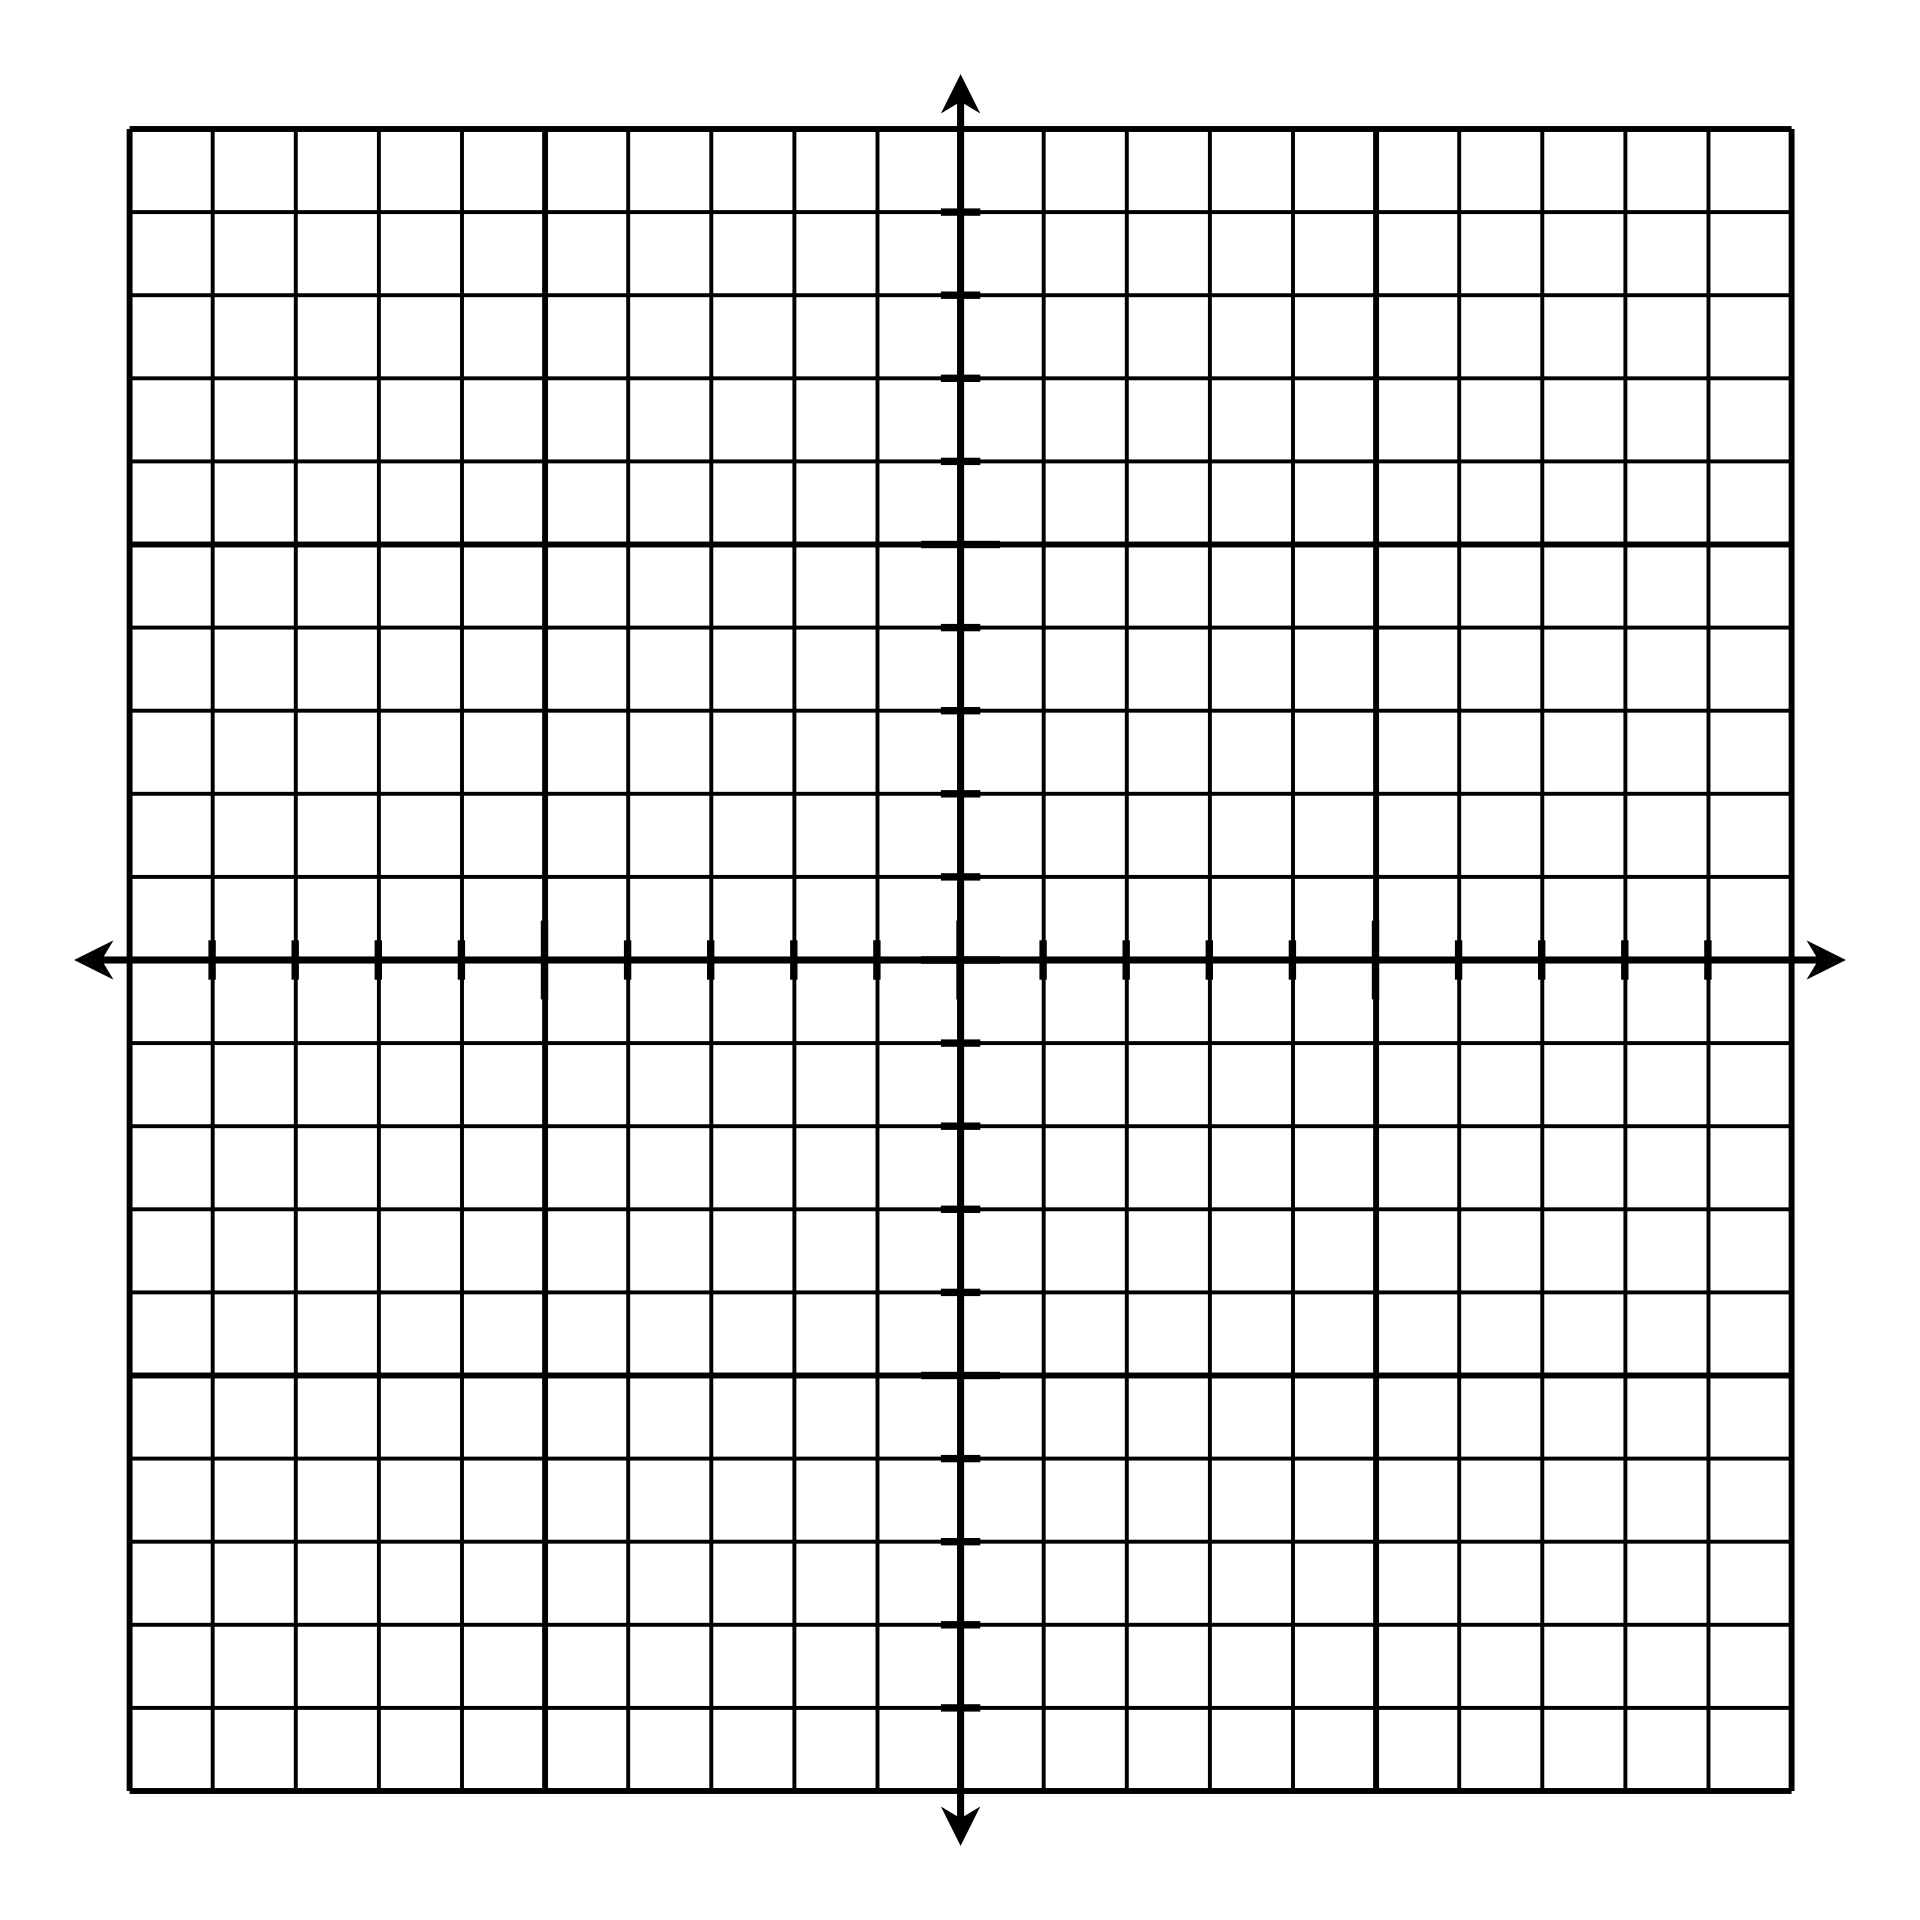 worksheet Cartesian Graph Paper similiar printable cartesian coordinate grid keywords graph paper plane